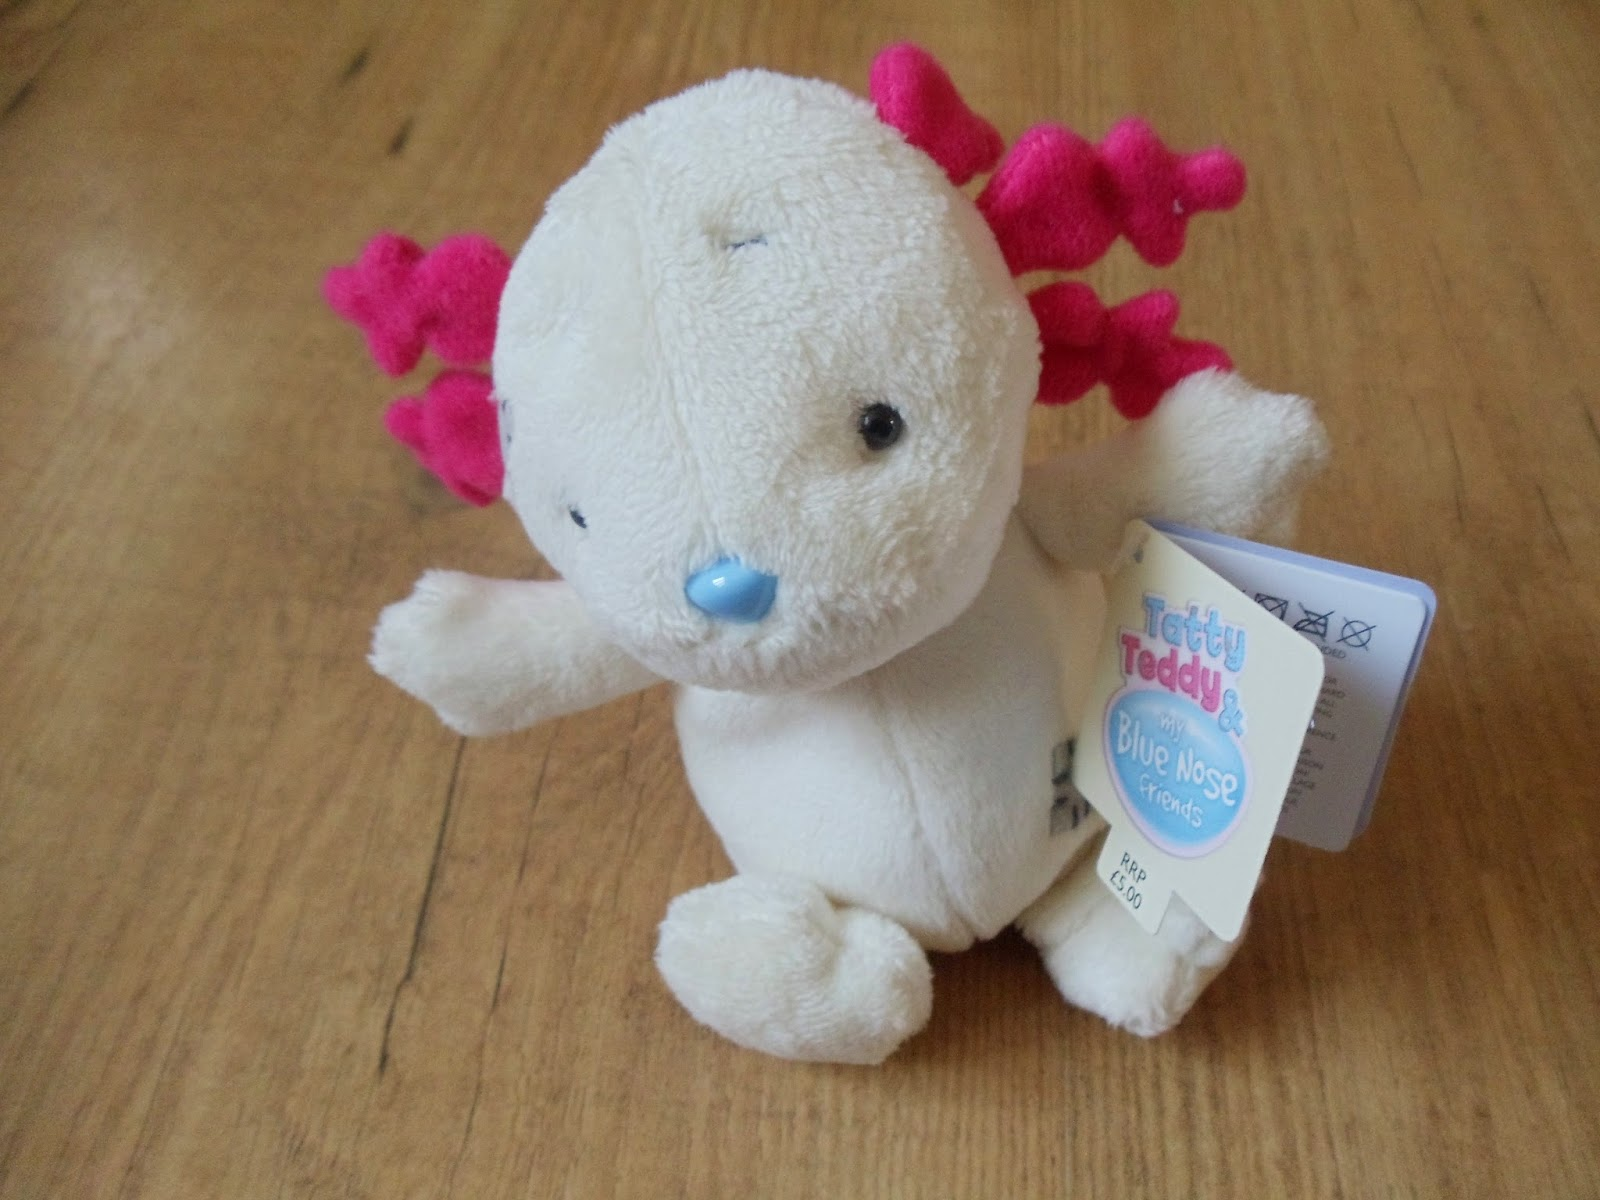 Playdays And Runways Tatty Teddy And Blue Nose Friends Review